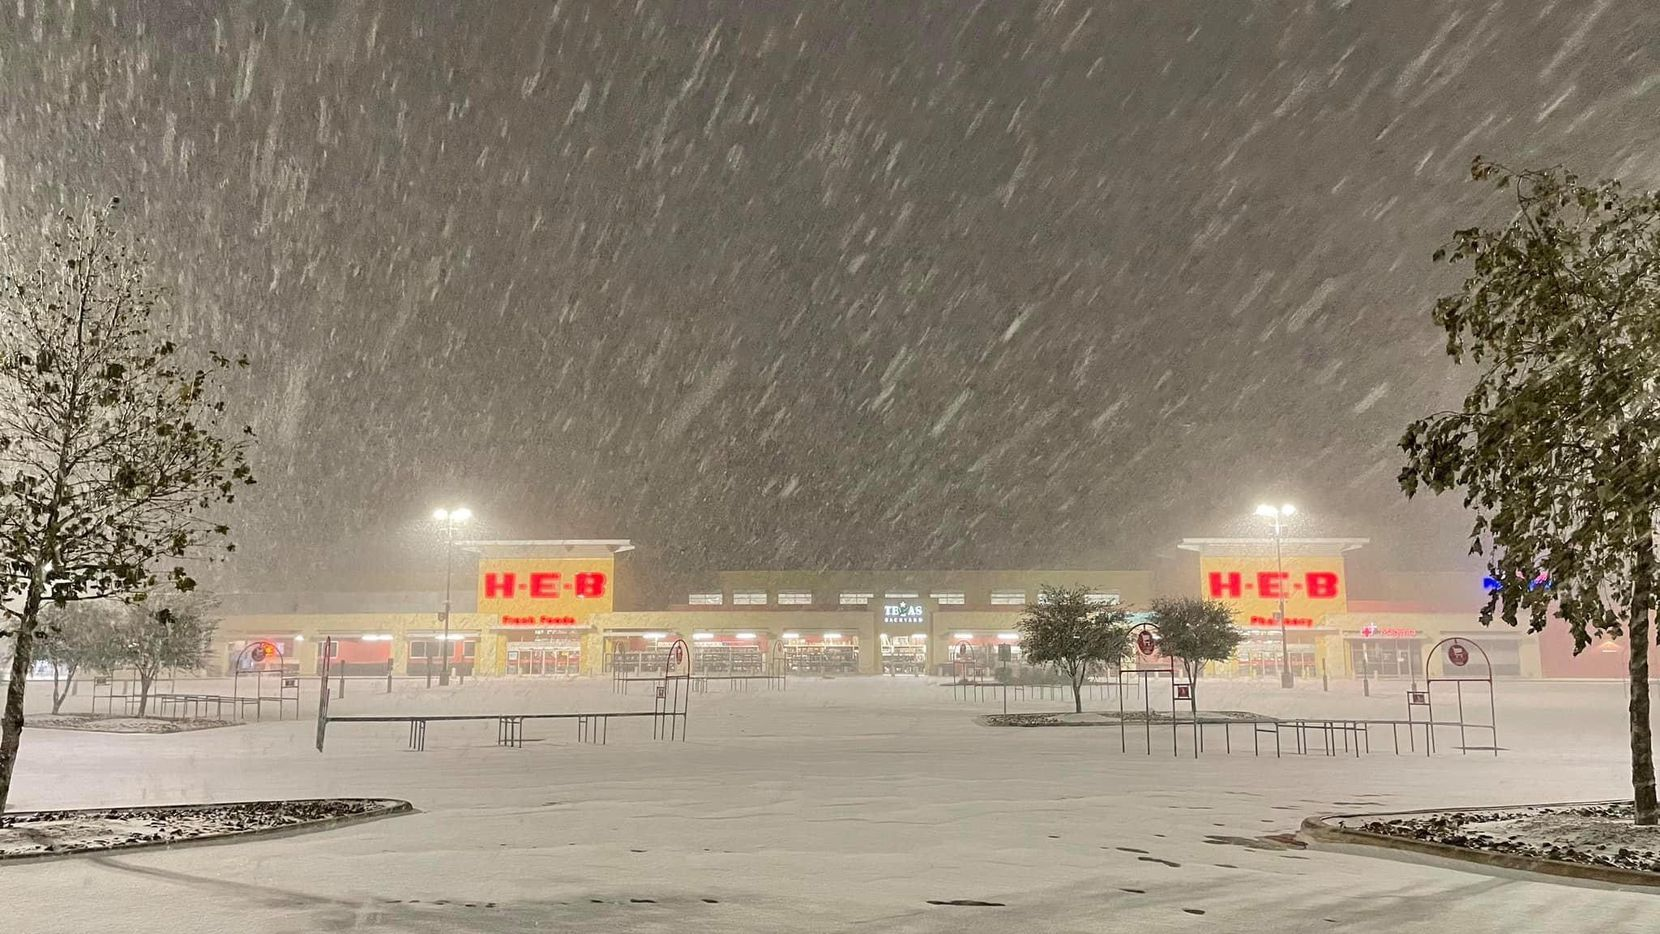 An H-E-B store in San Antonio is shown during the February storm. Only about 40 of H-E-B s 351 stores in Texas lost power during that week.